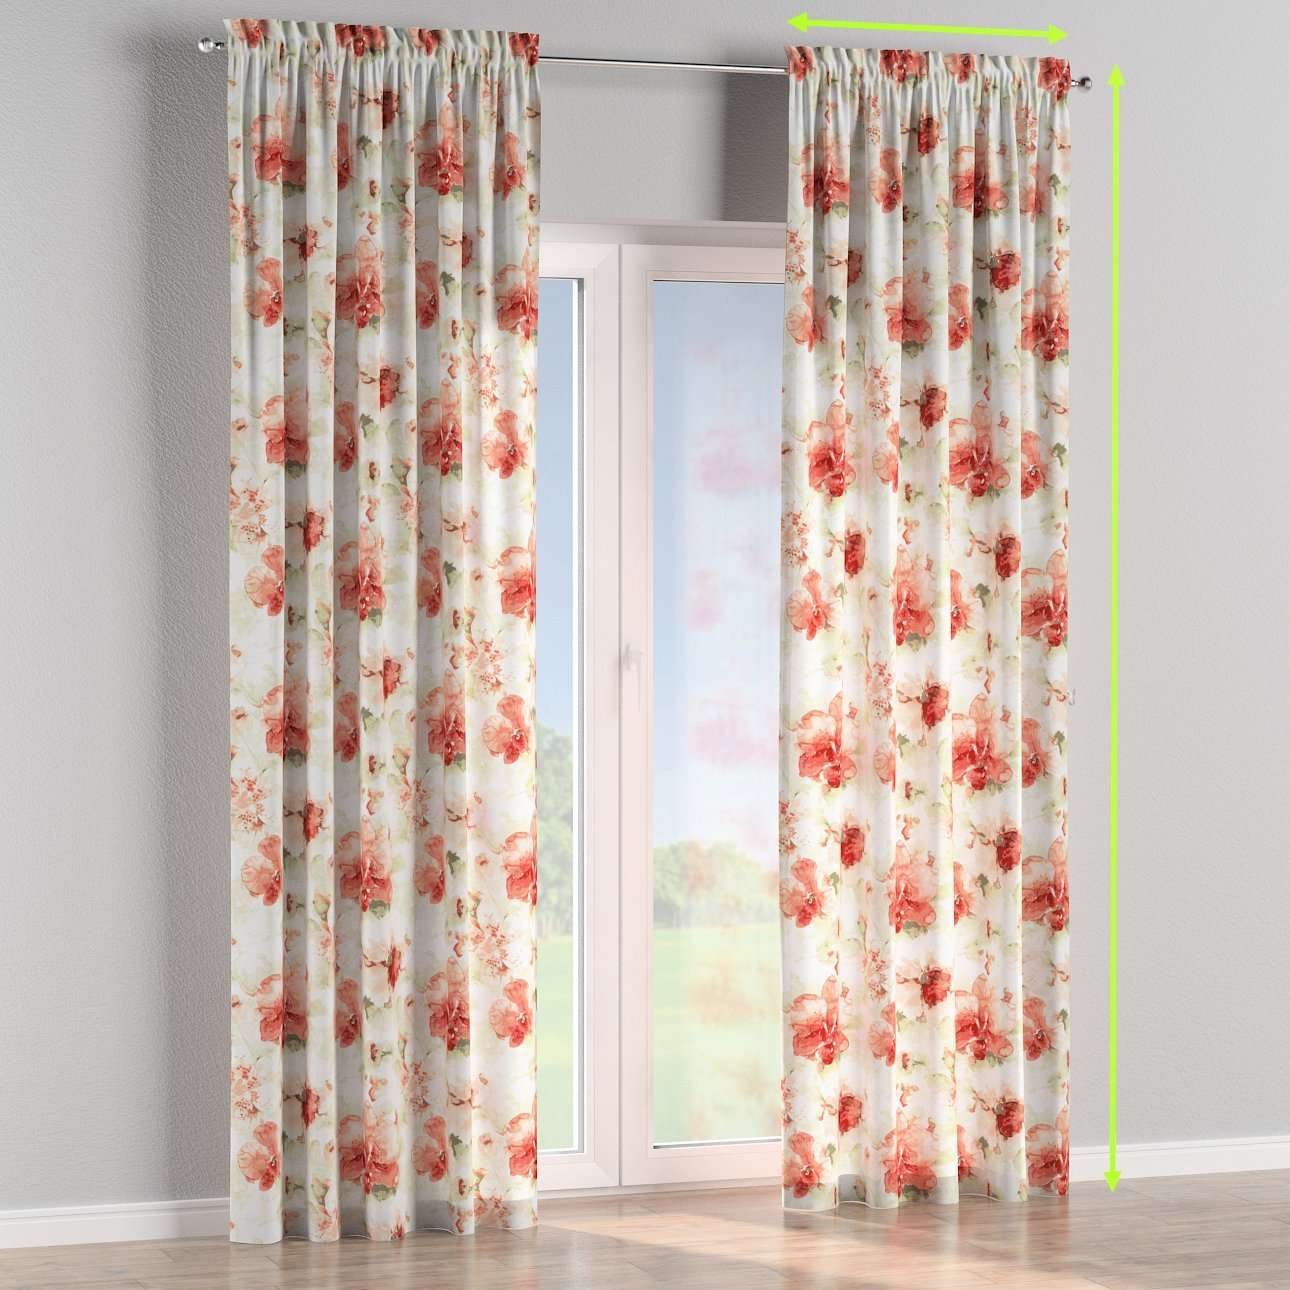 Slot and frill lined curtains in collection Acapulco, fabric: 141-34